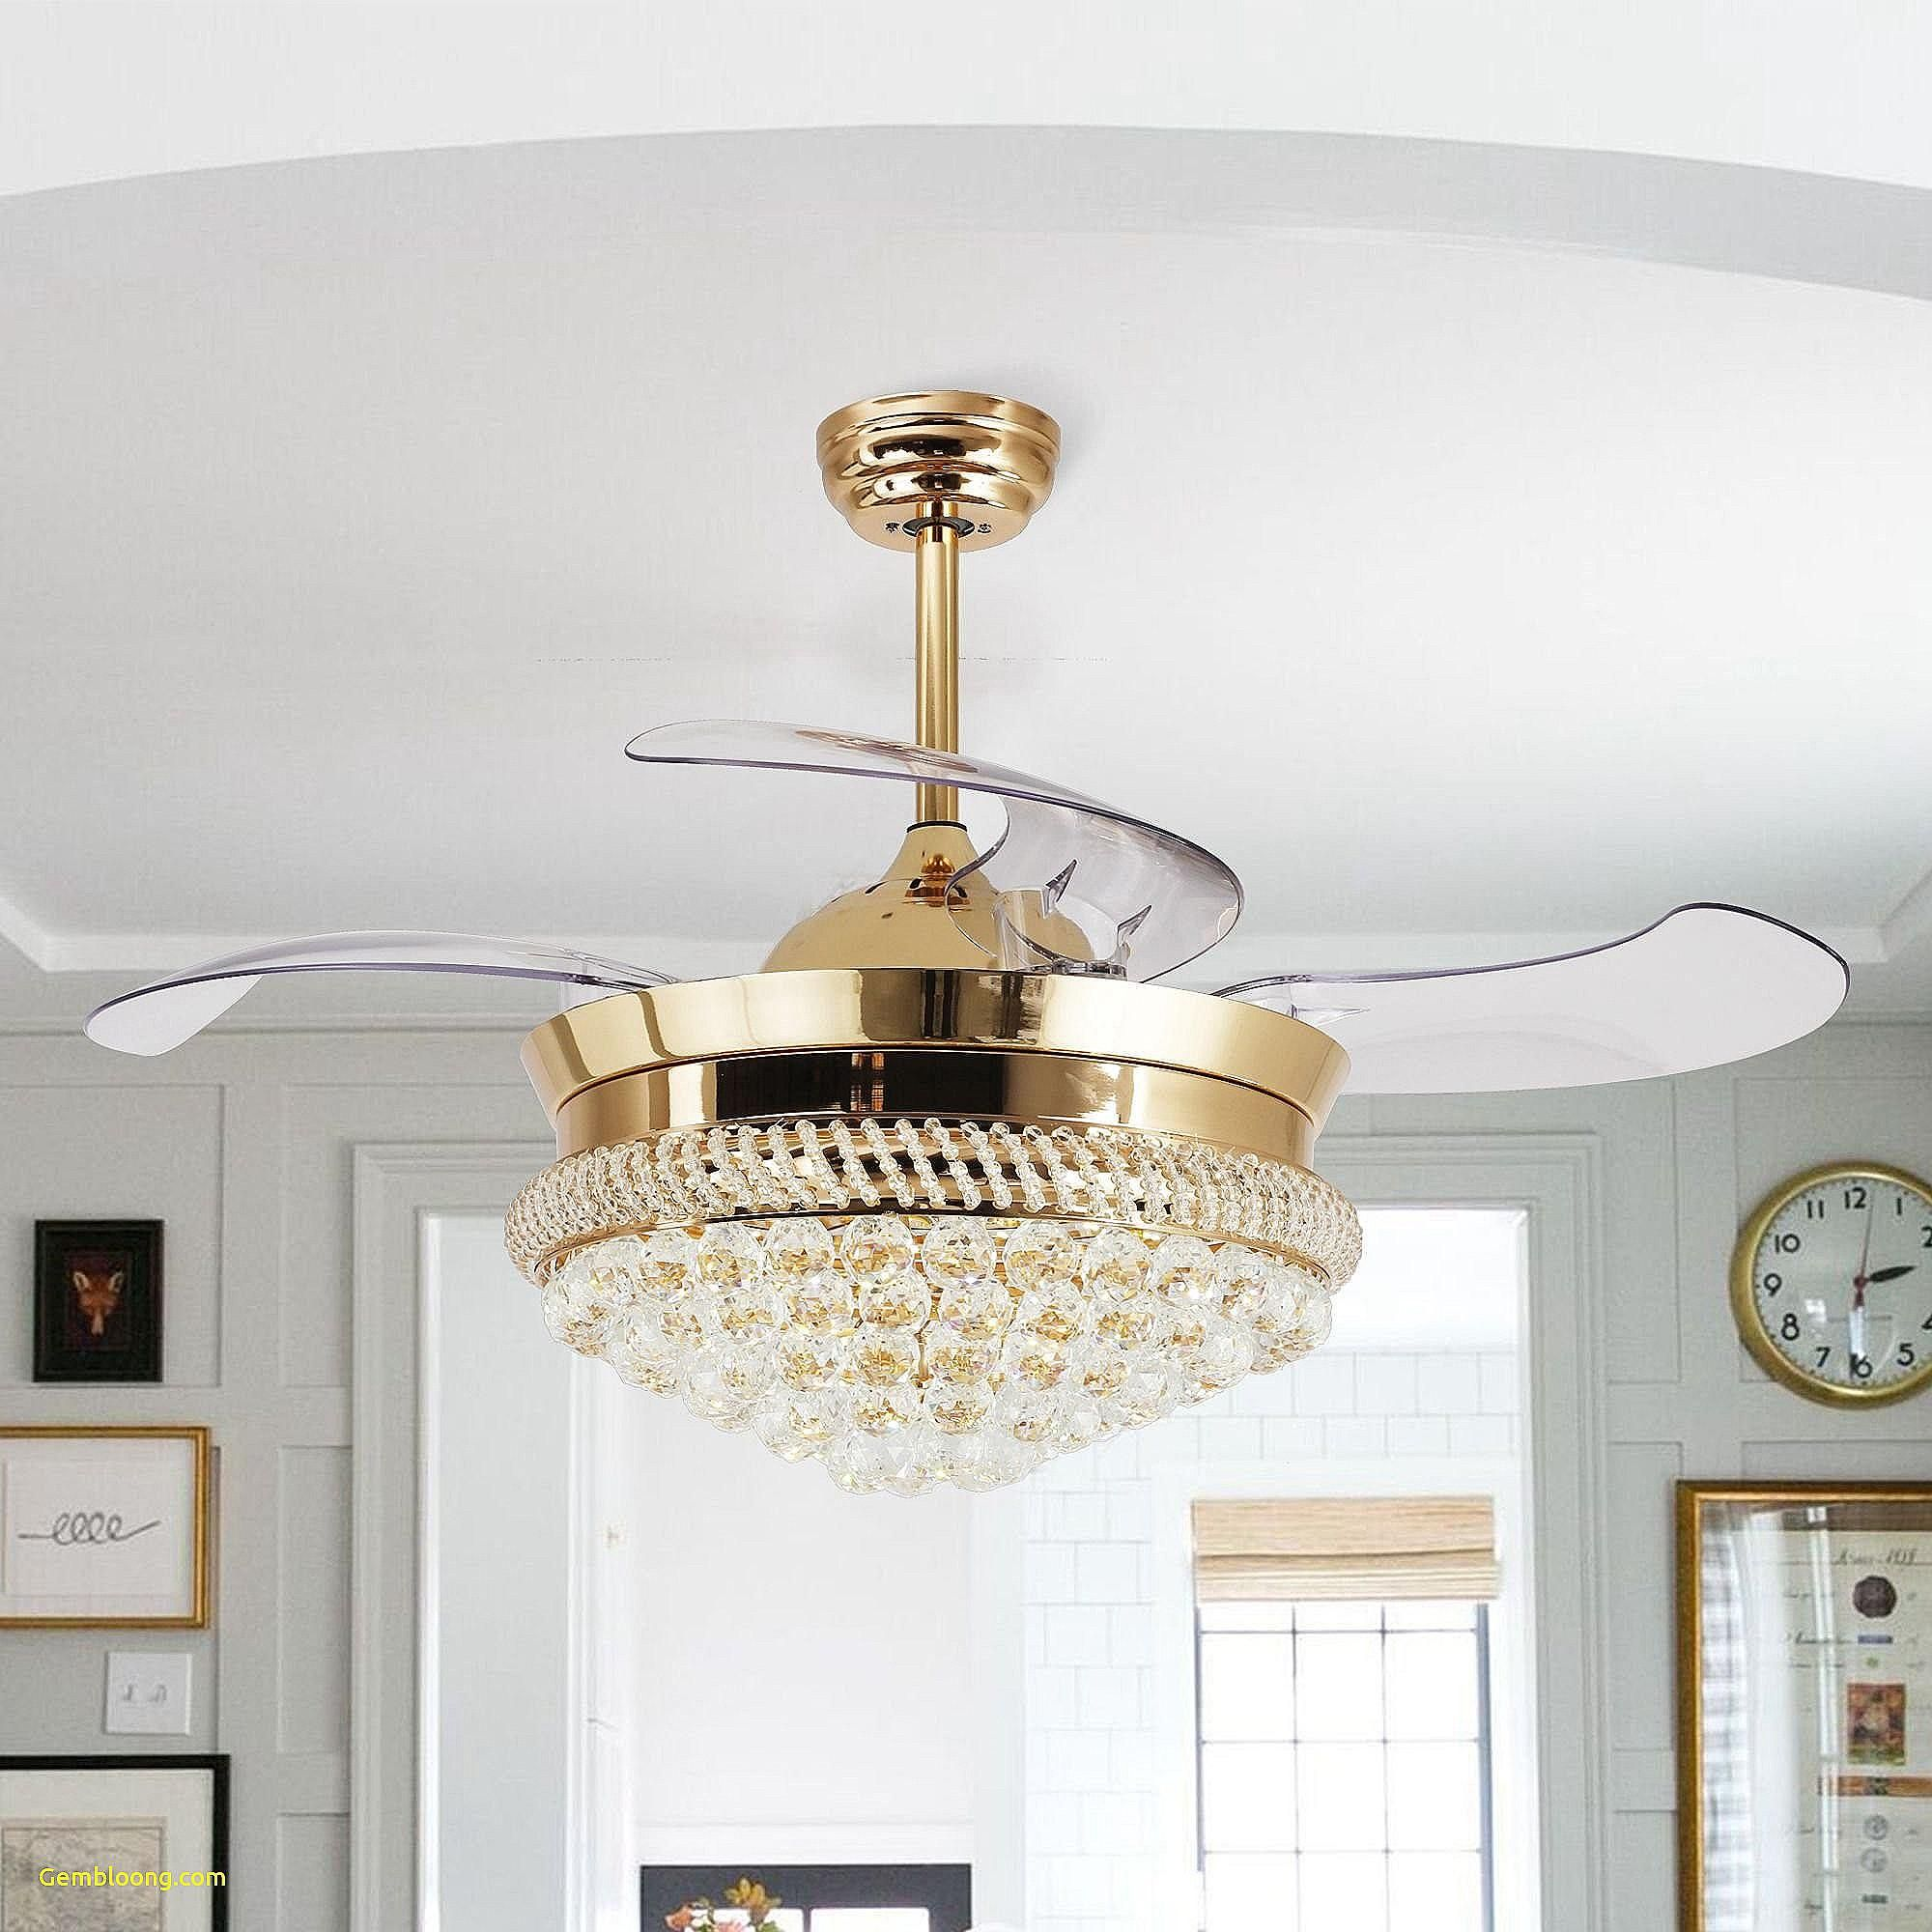 Lovely Lighting For A Small Kitchen Ceiling Fan Chandelier